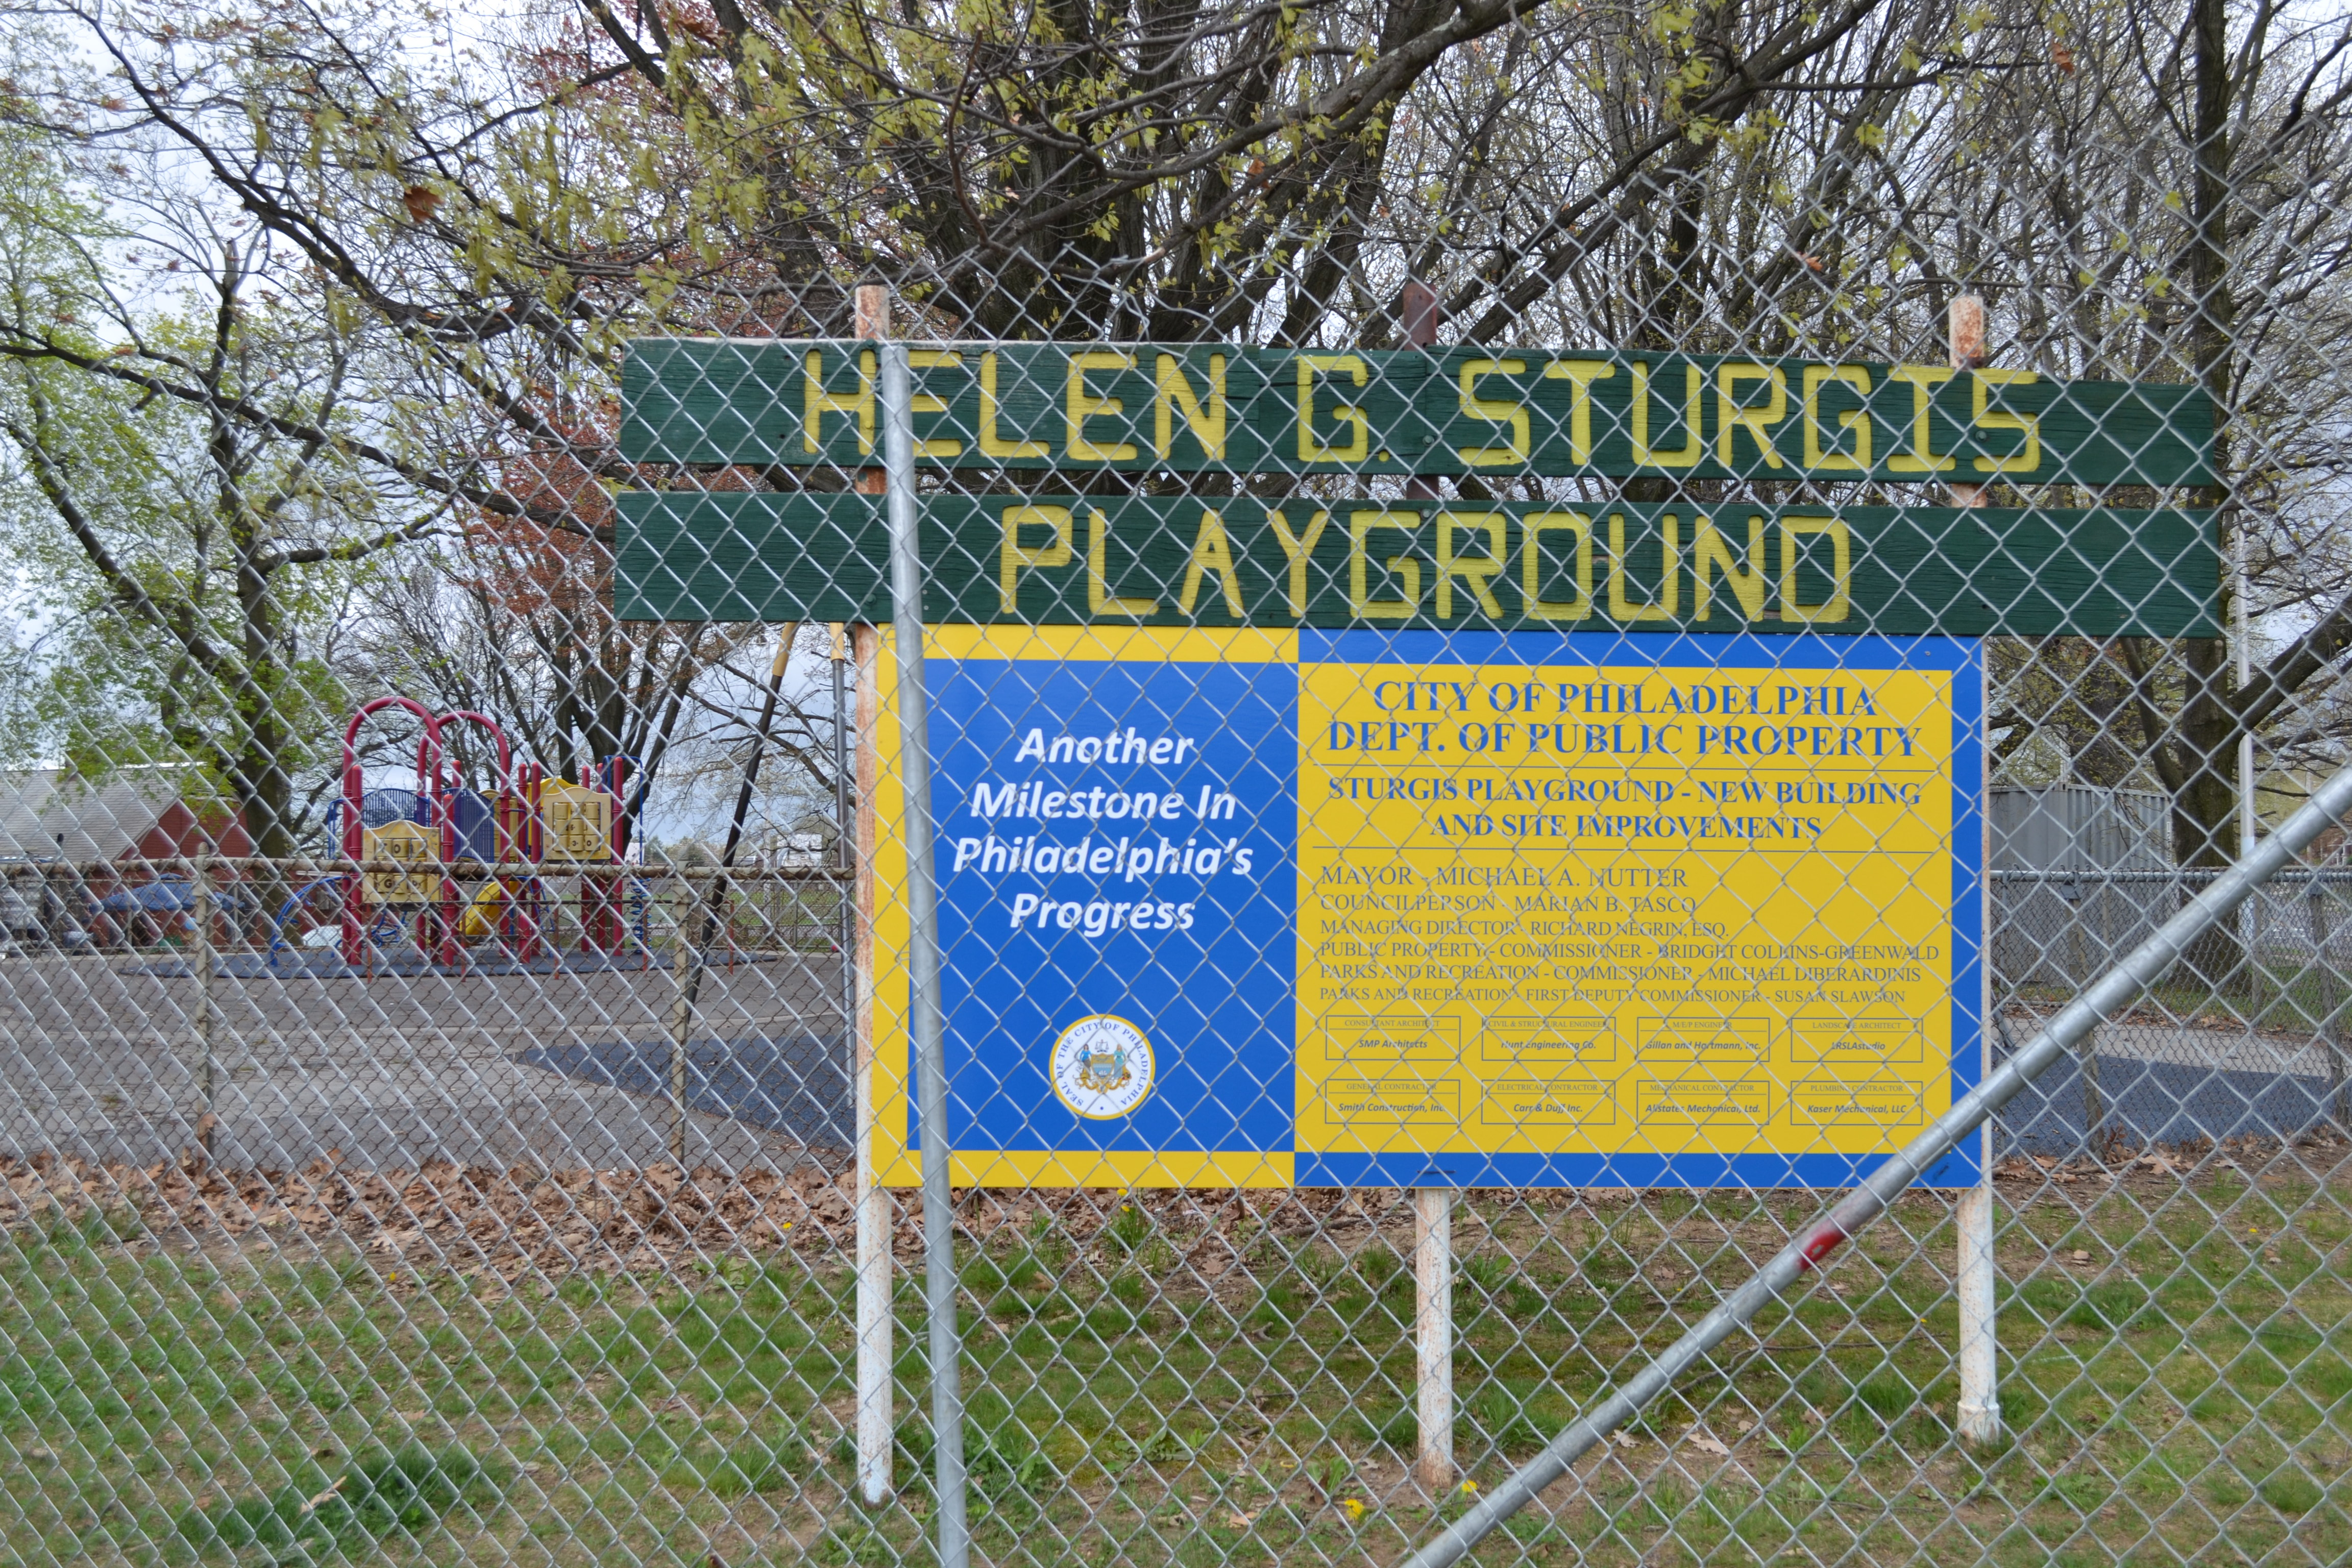 Project leaders broke ground on the Helen Sturgis Playground renovation